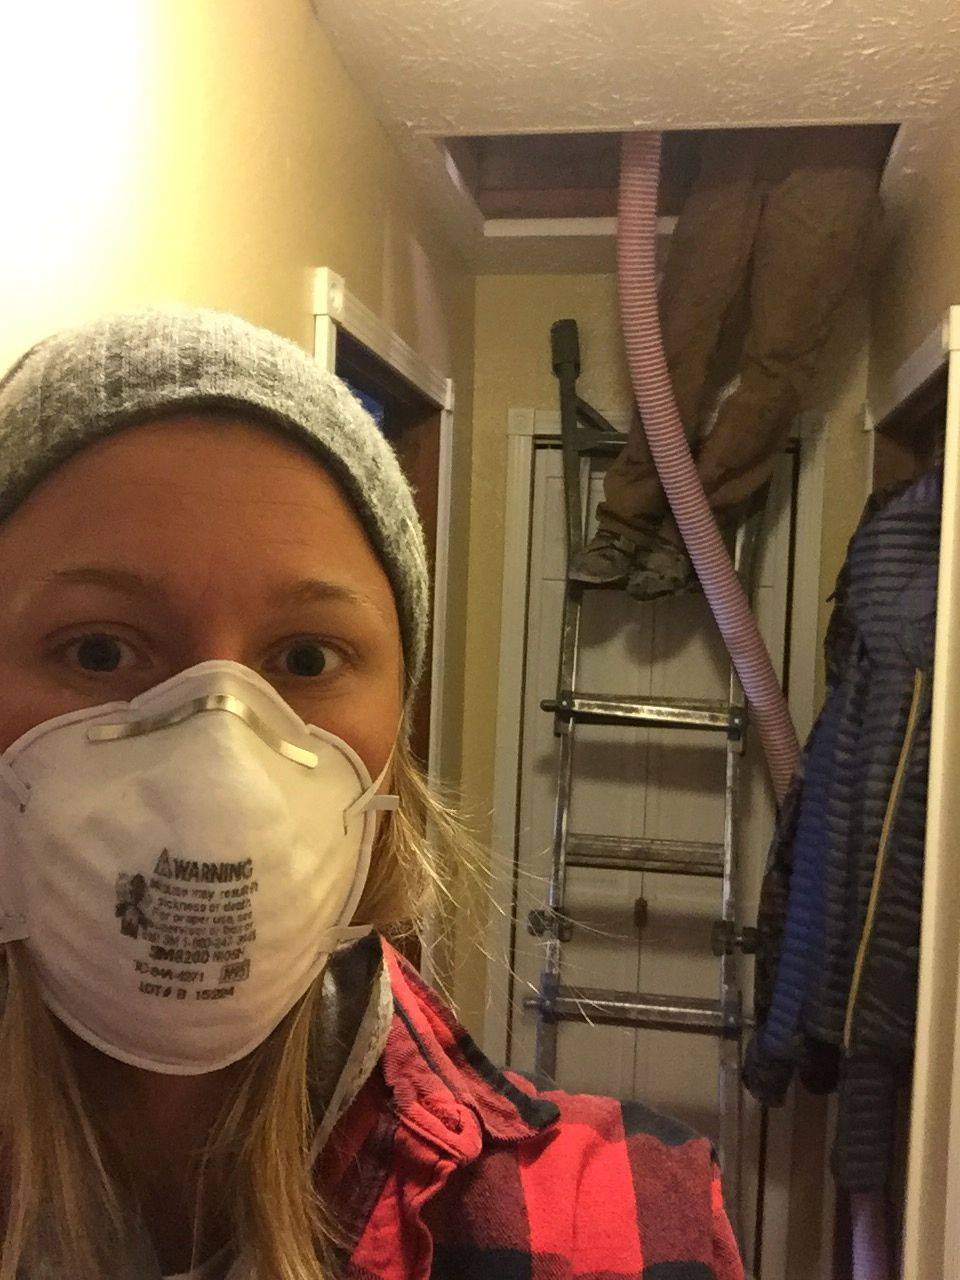 Insulating our house a bit more, now that it is so cold out! Keeping this place cozy.